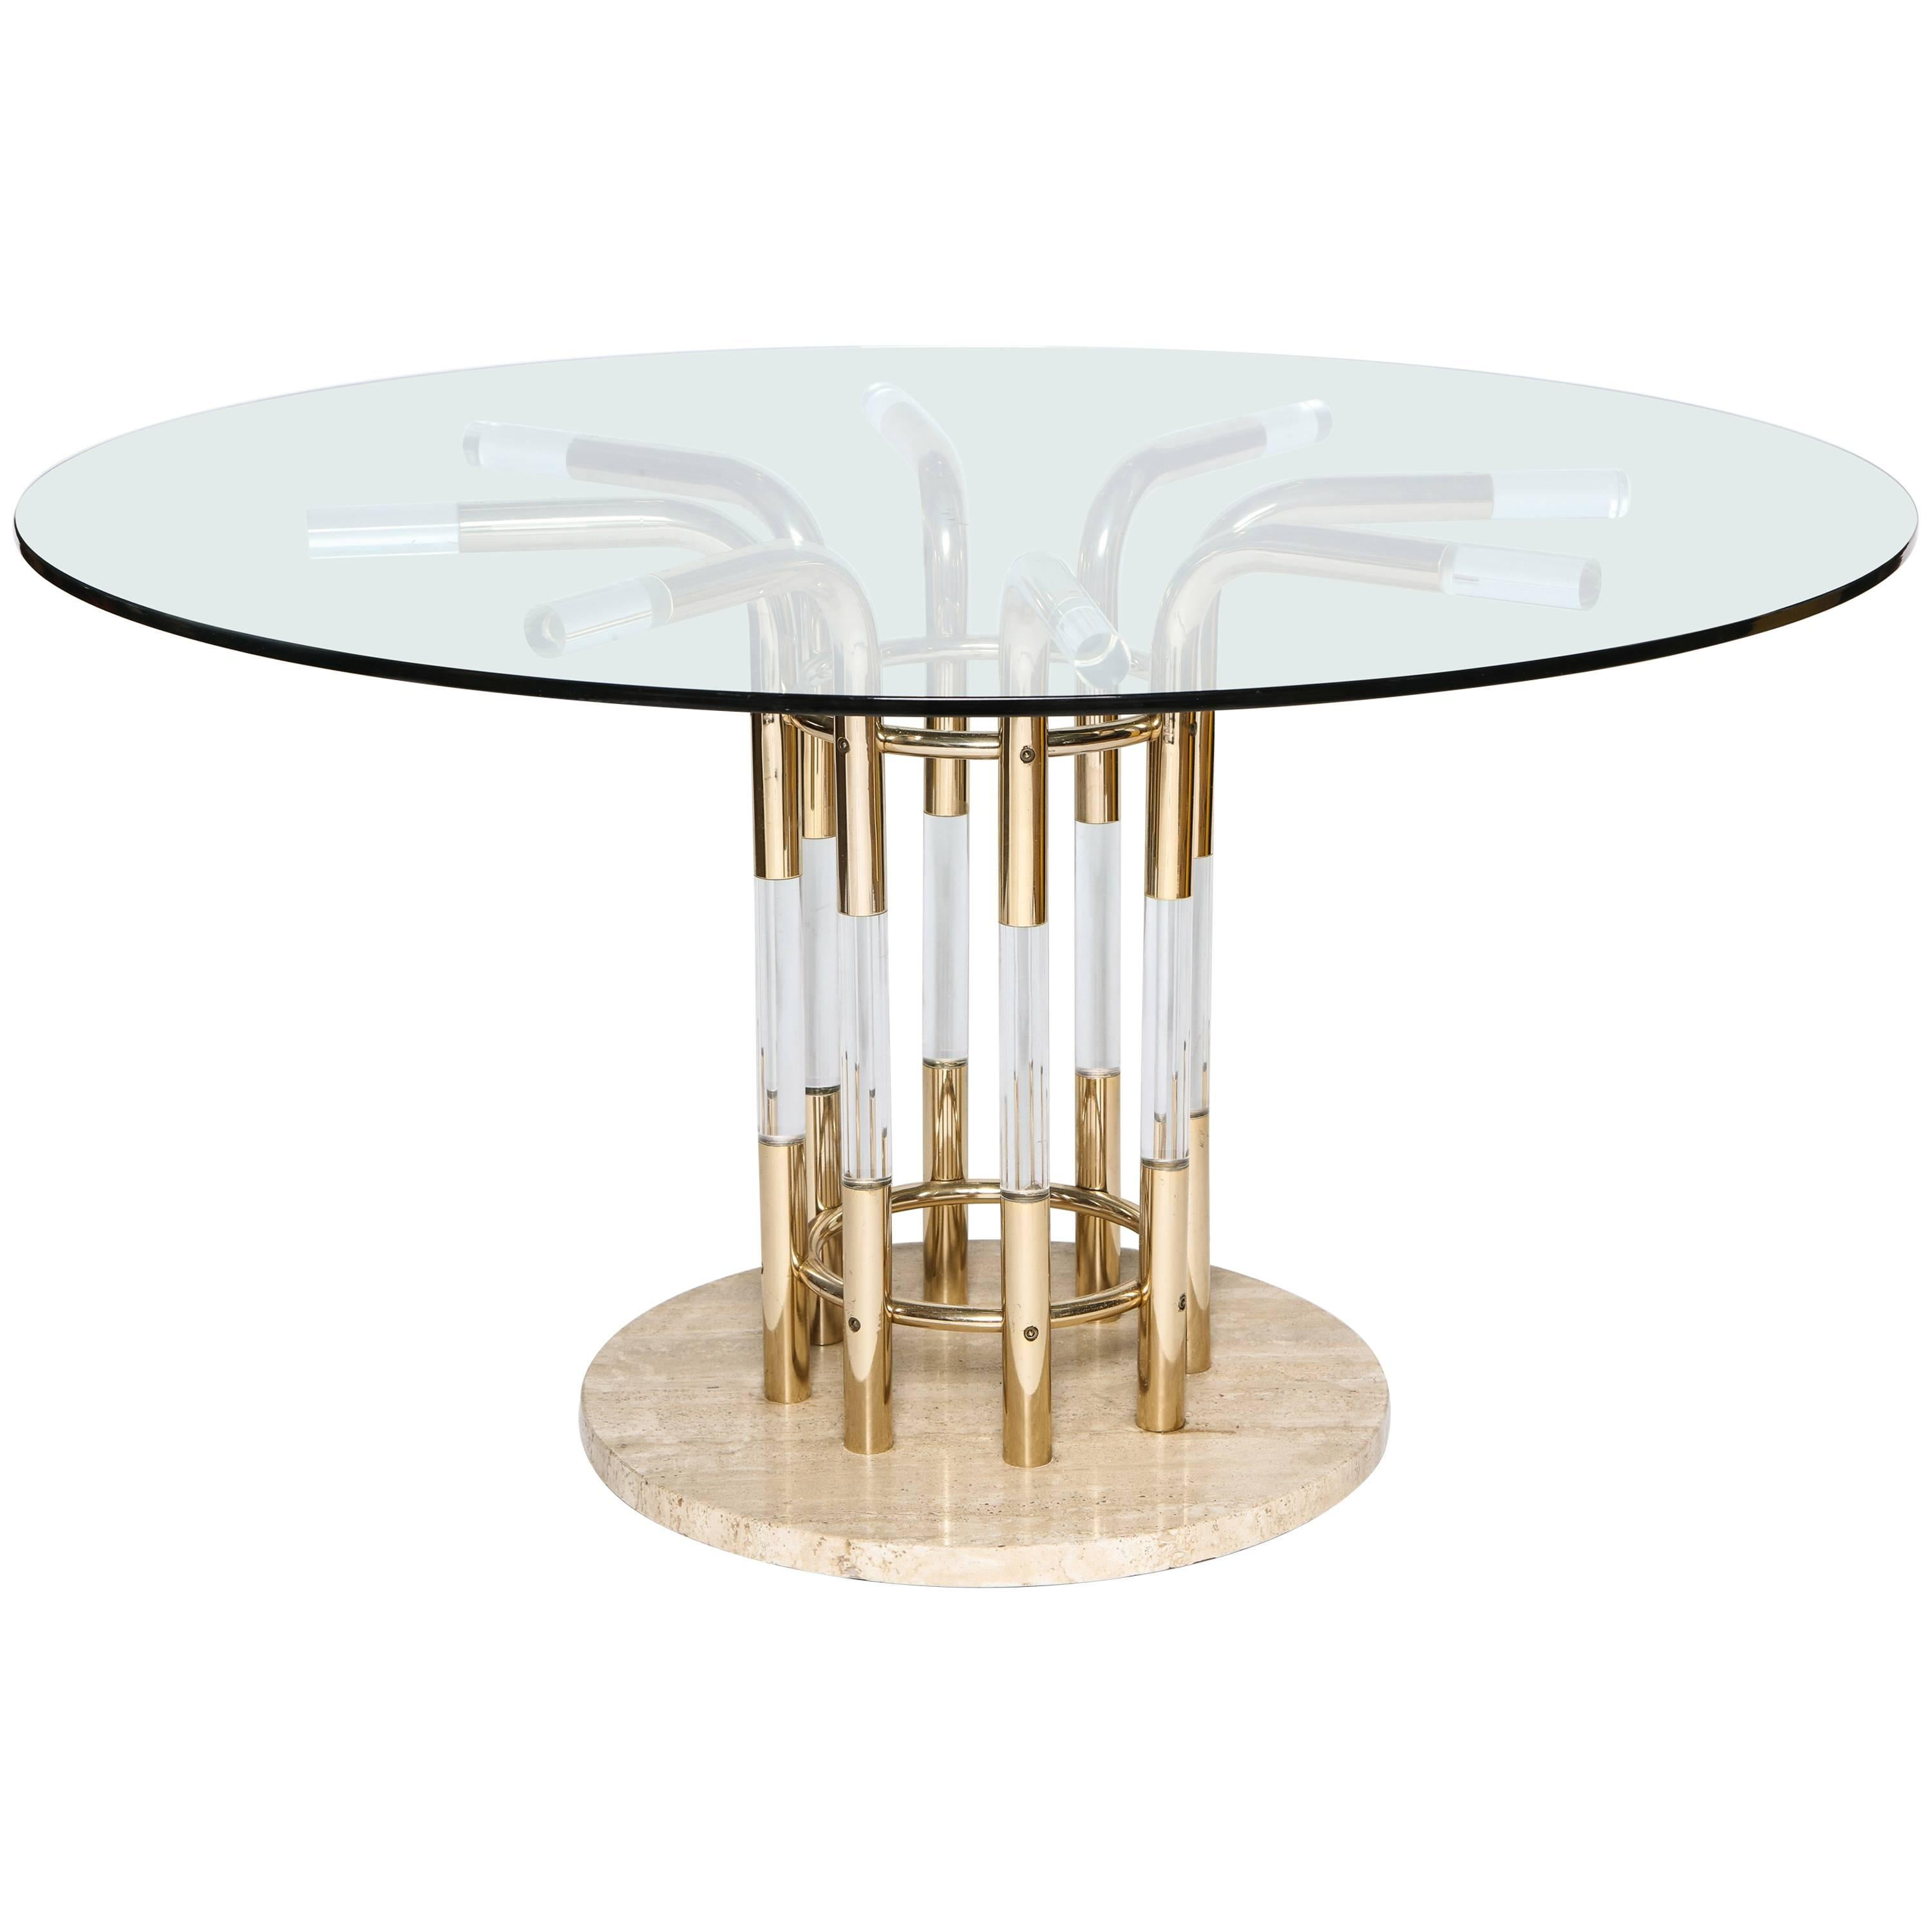 Lucite Tables 964 For Sale at 1stdibs